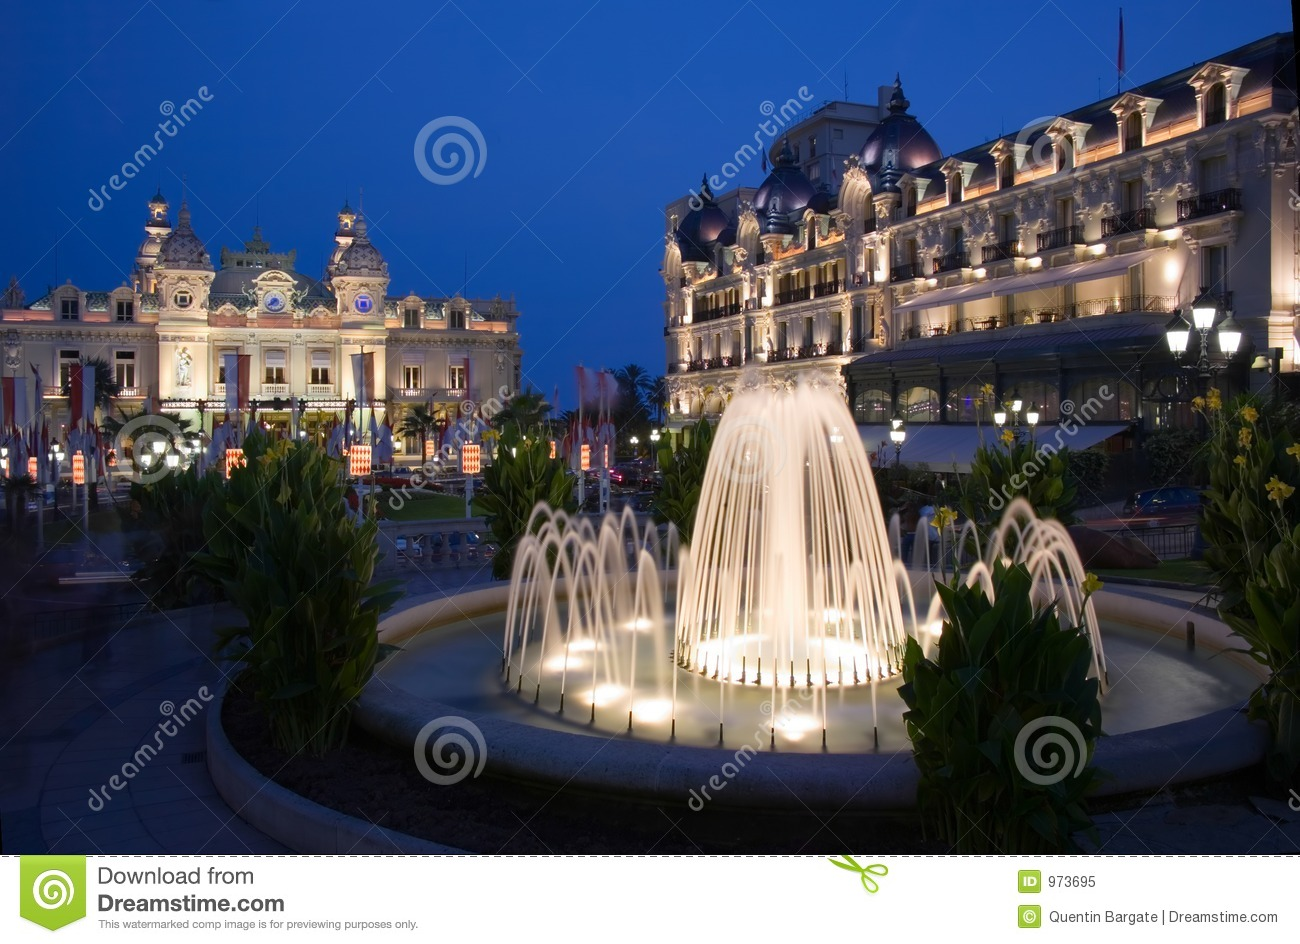 Fountains At Dusk In Casino Square In Monaco Stock Image   Image ...